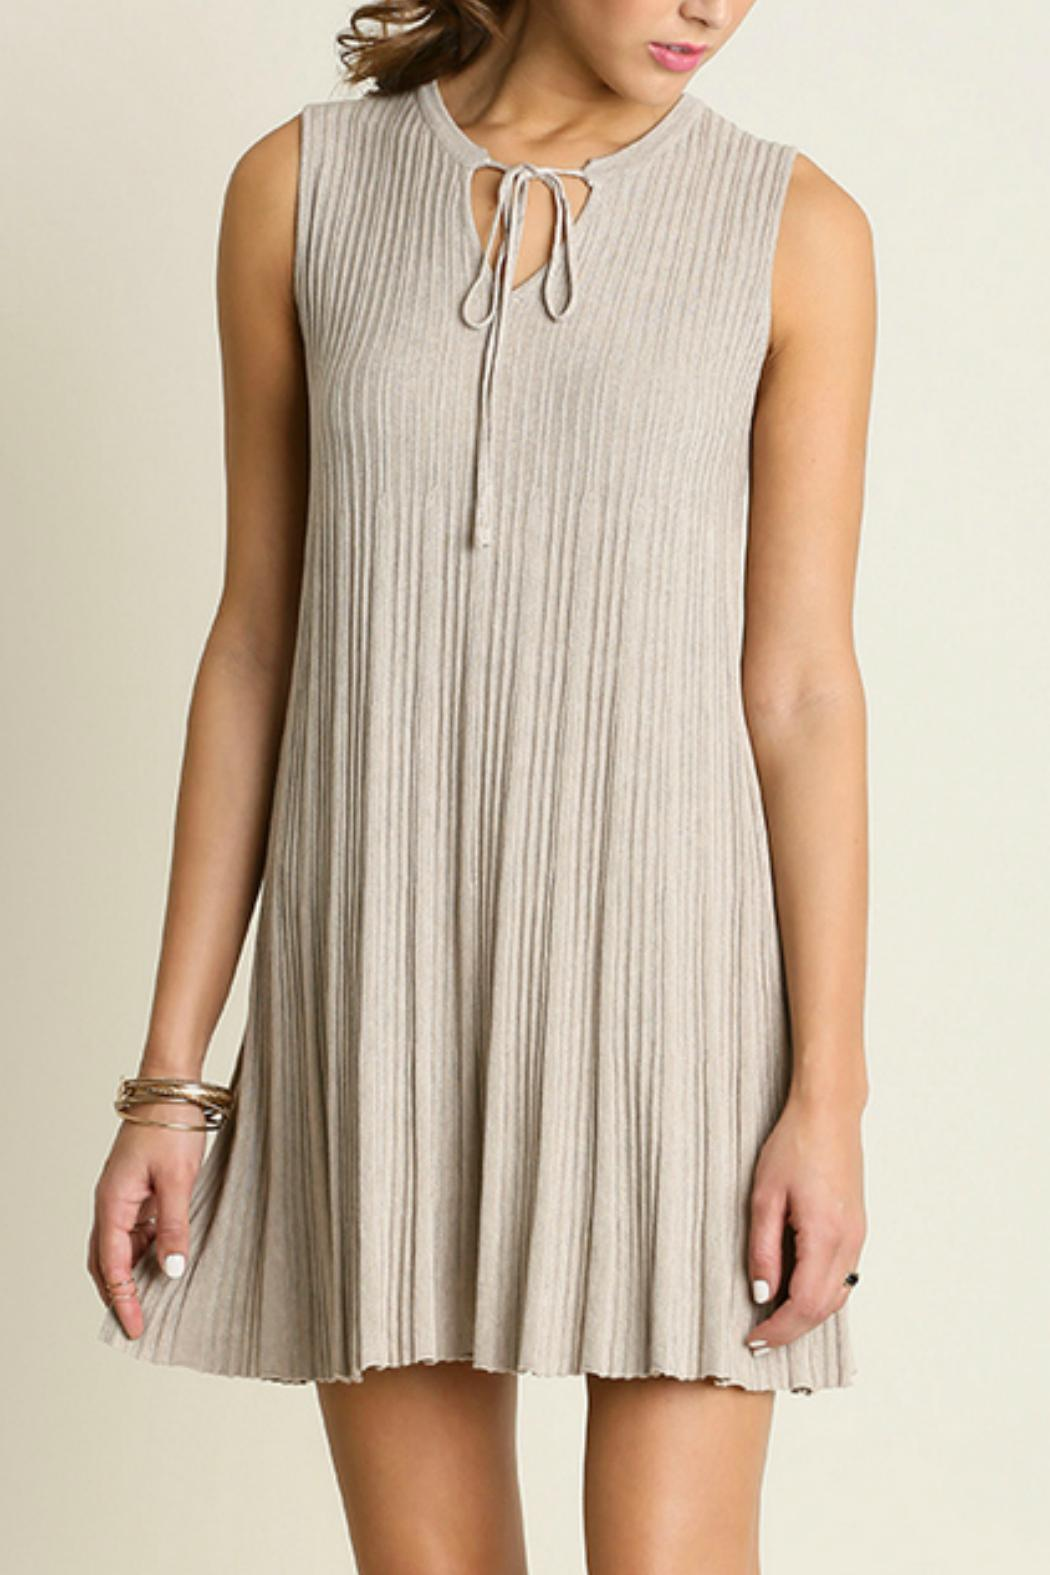 Umgee USA Sleeveless Keyhole Dress - Main Image